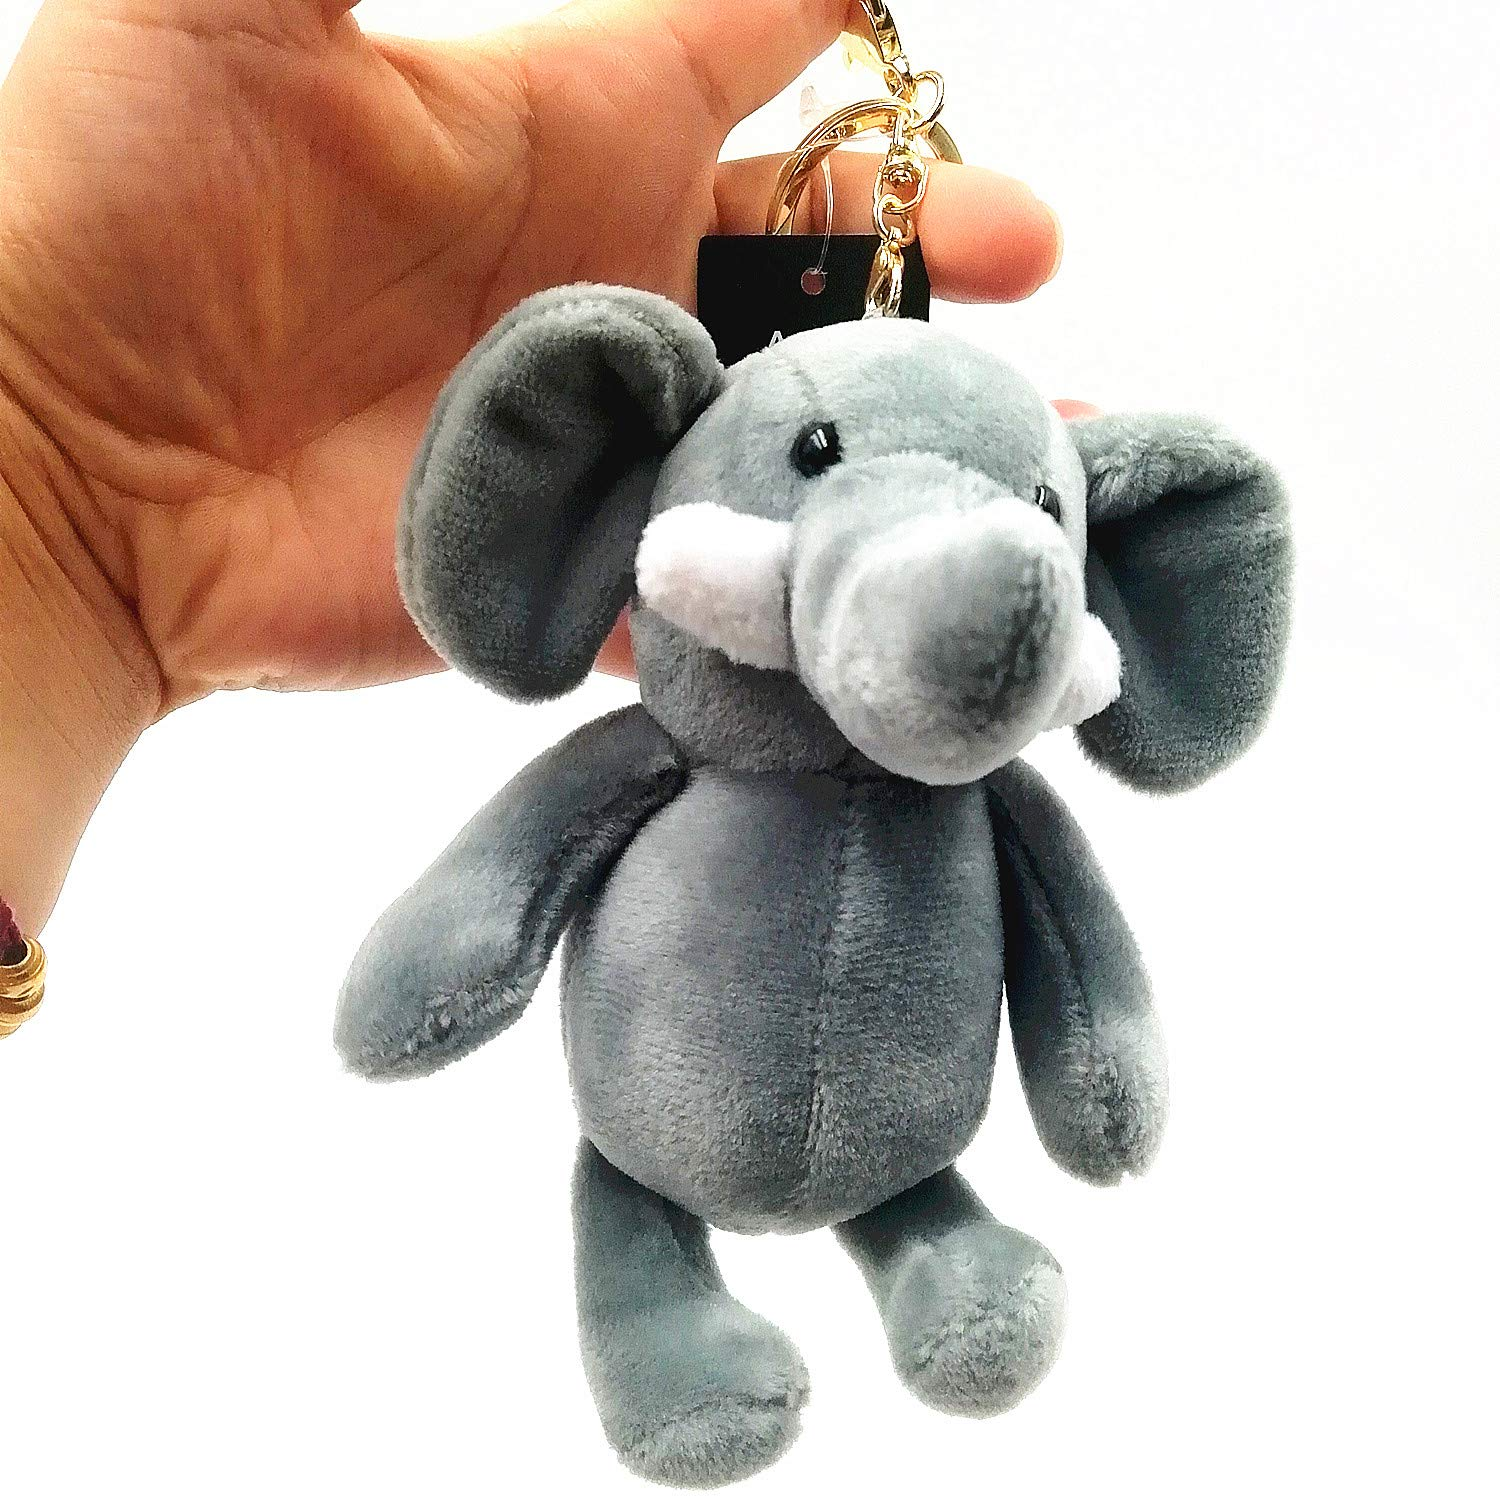 OF Cute Elephant Plush Toy Keychain Doll Key Ring Bag Pendant OldFriendtoolshop